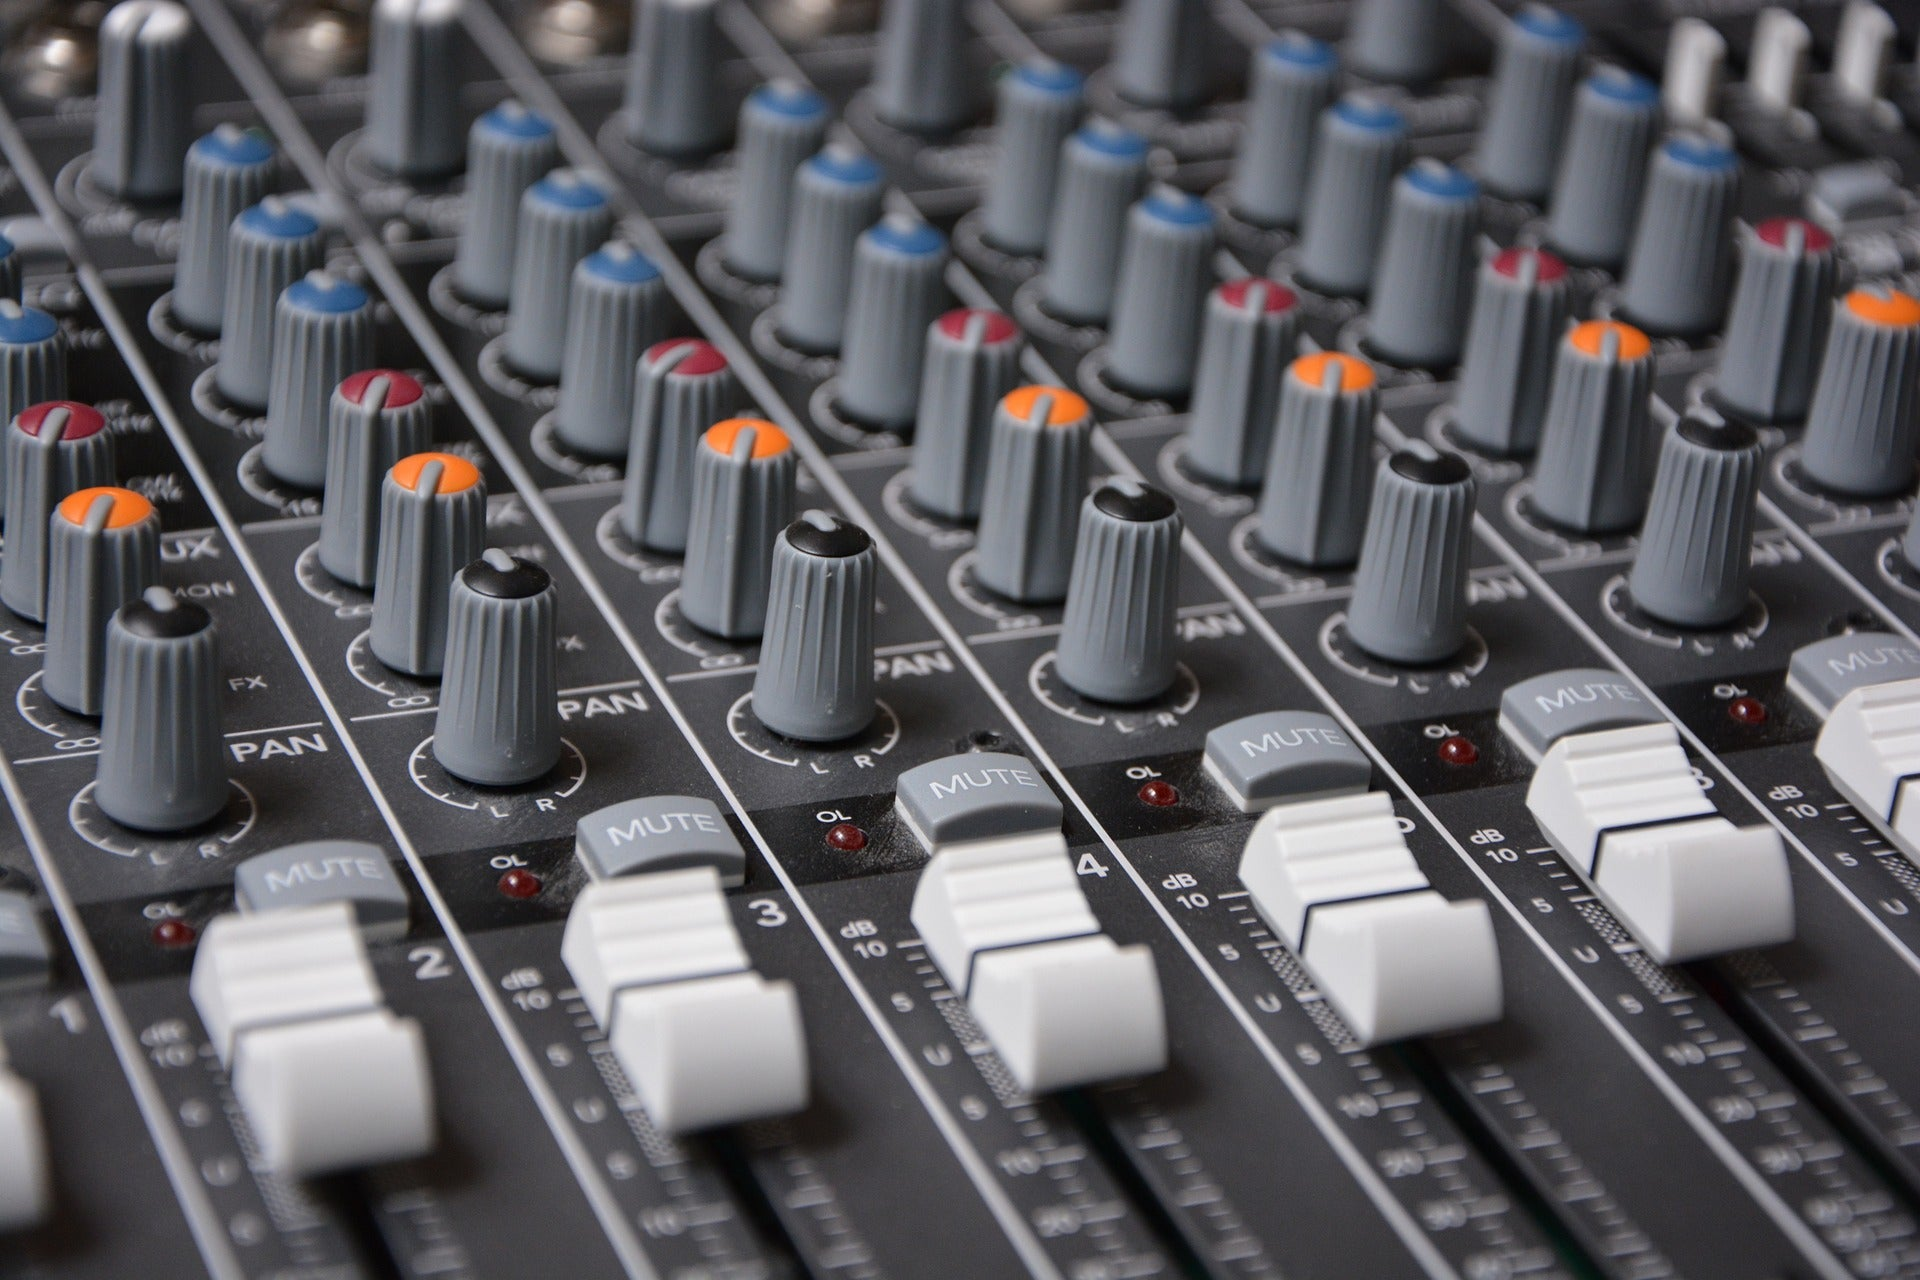 Difference between producing and mixing